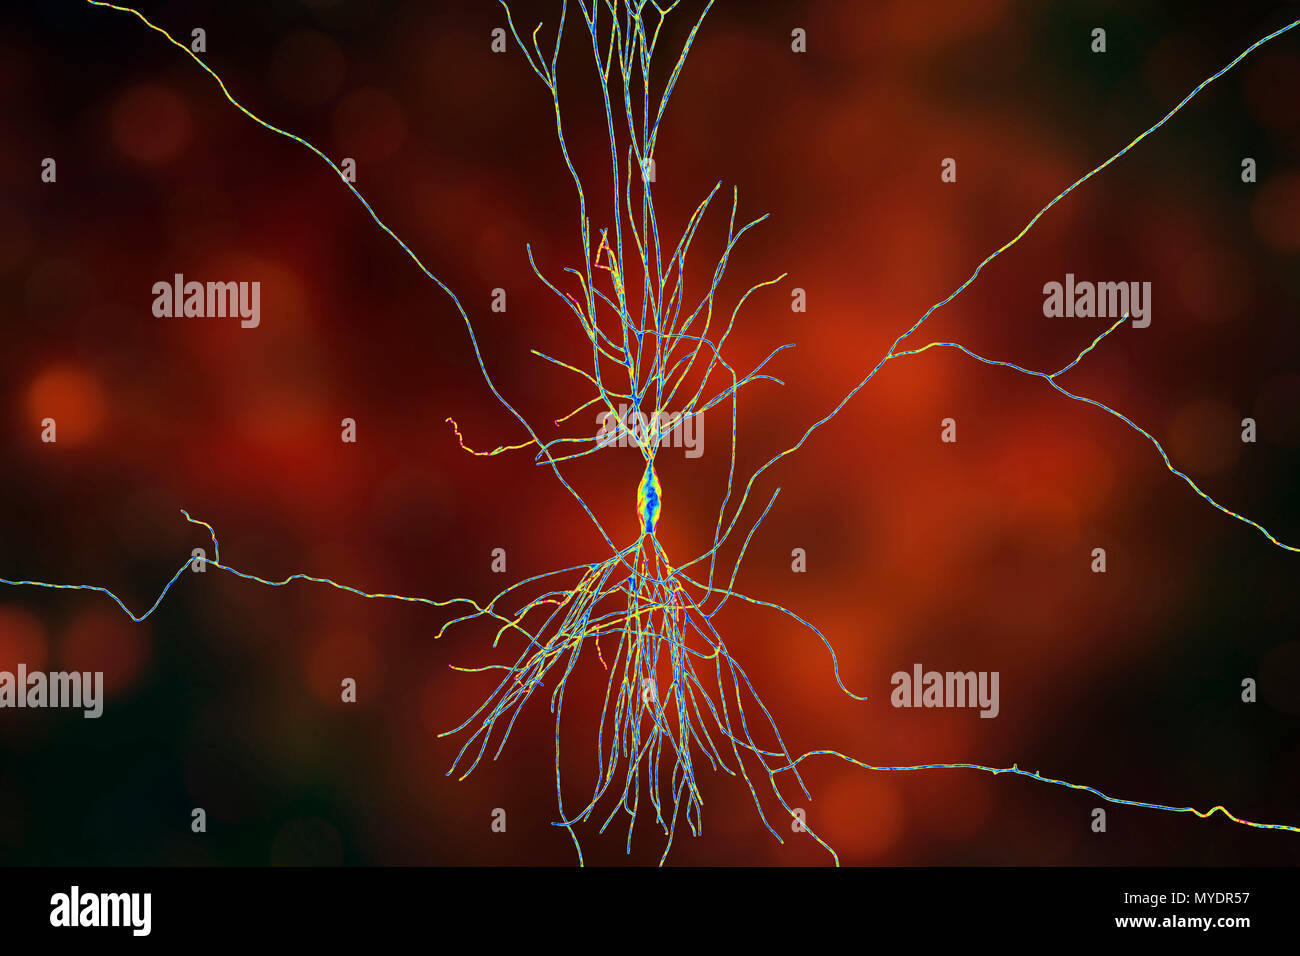 Hippocampus neuron, computer illustration. The hippocampus in humans is the structure in the brain responsible for long-term memory. - Stock Image